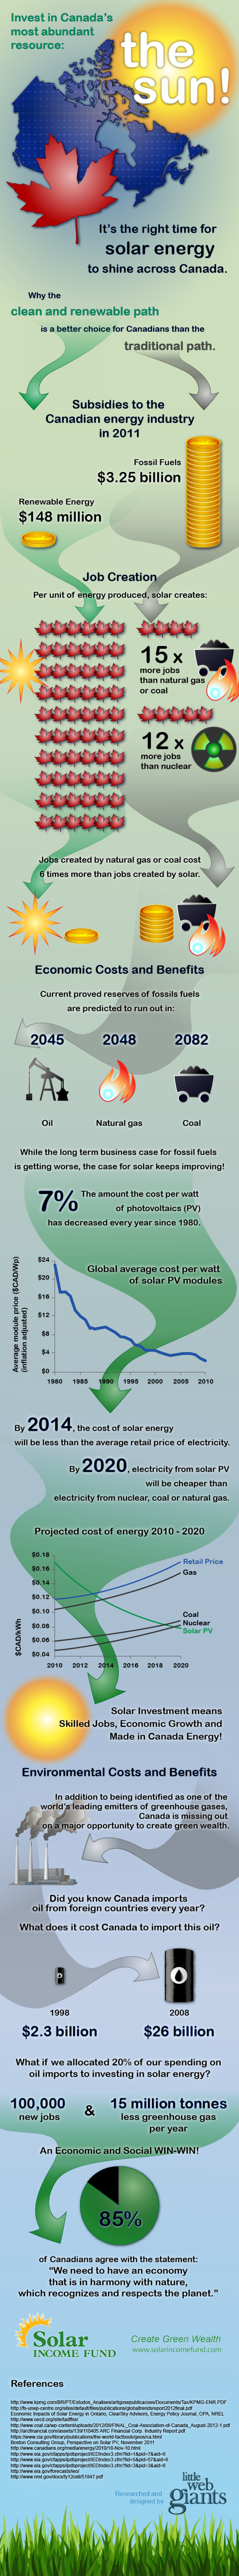 Solar Energy - Social and Economic Win Win for Canada